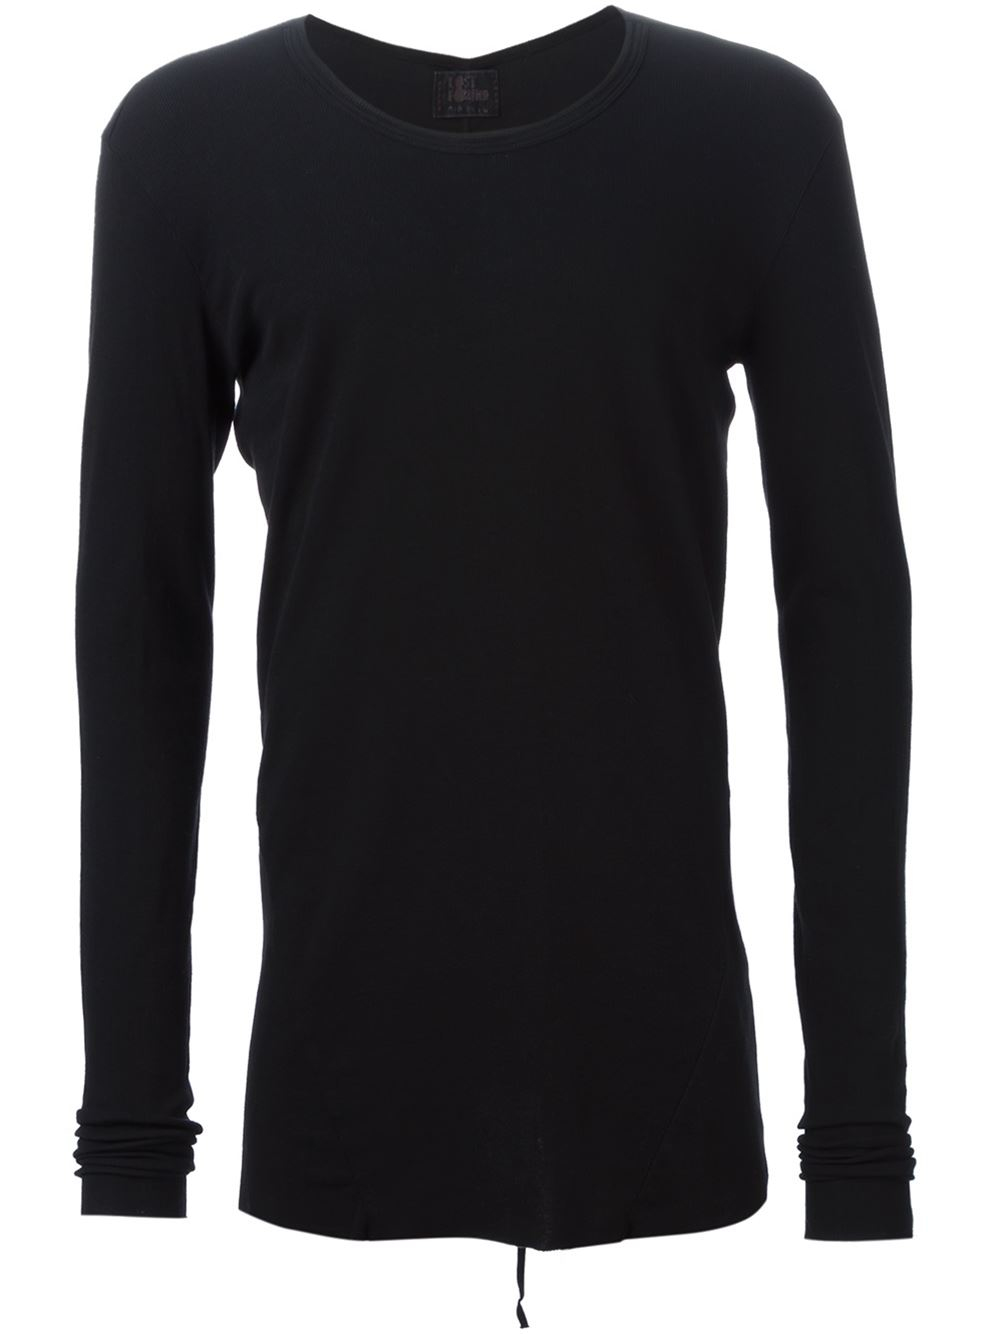 Lost Found Cut Long Sleeve T Shirt In Black For Men Lyst